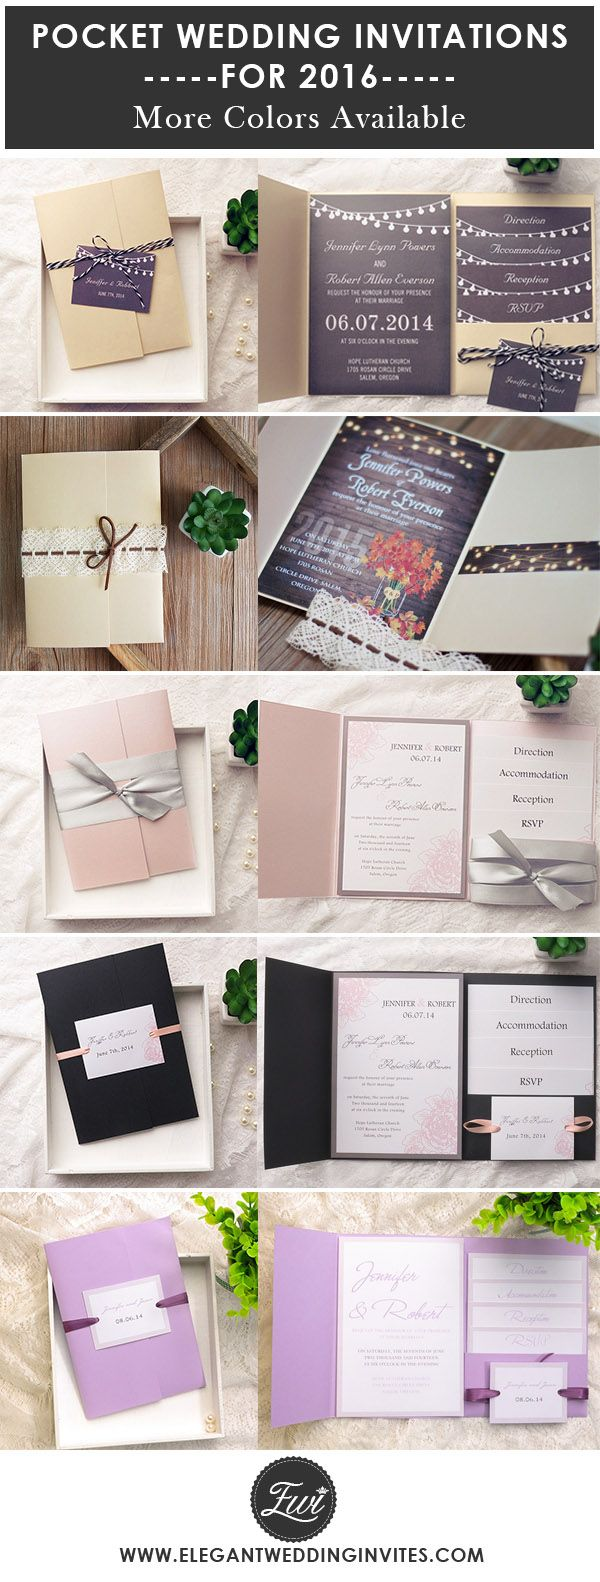 elegant pocket wedding invitations with free RSVP